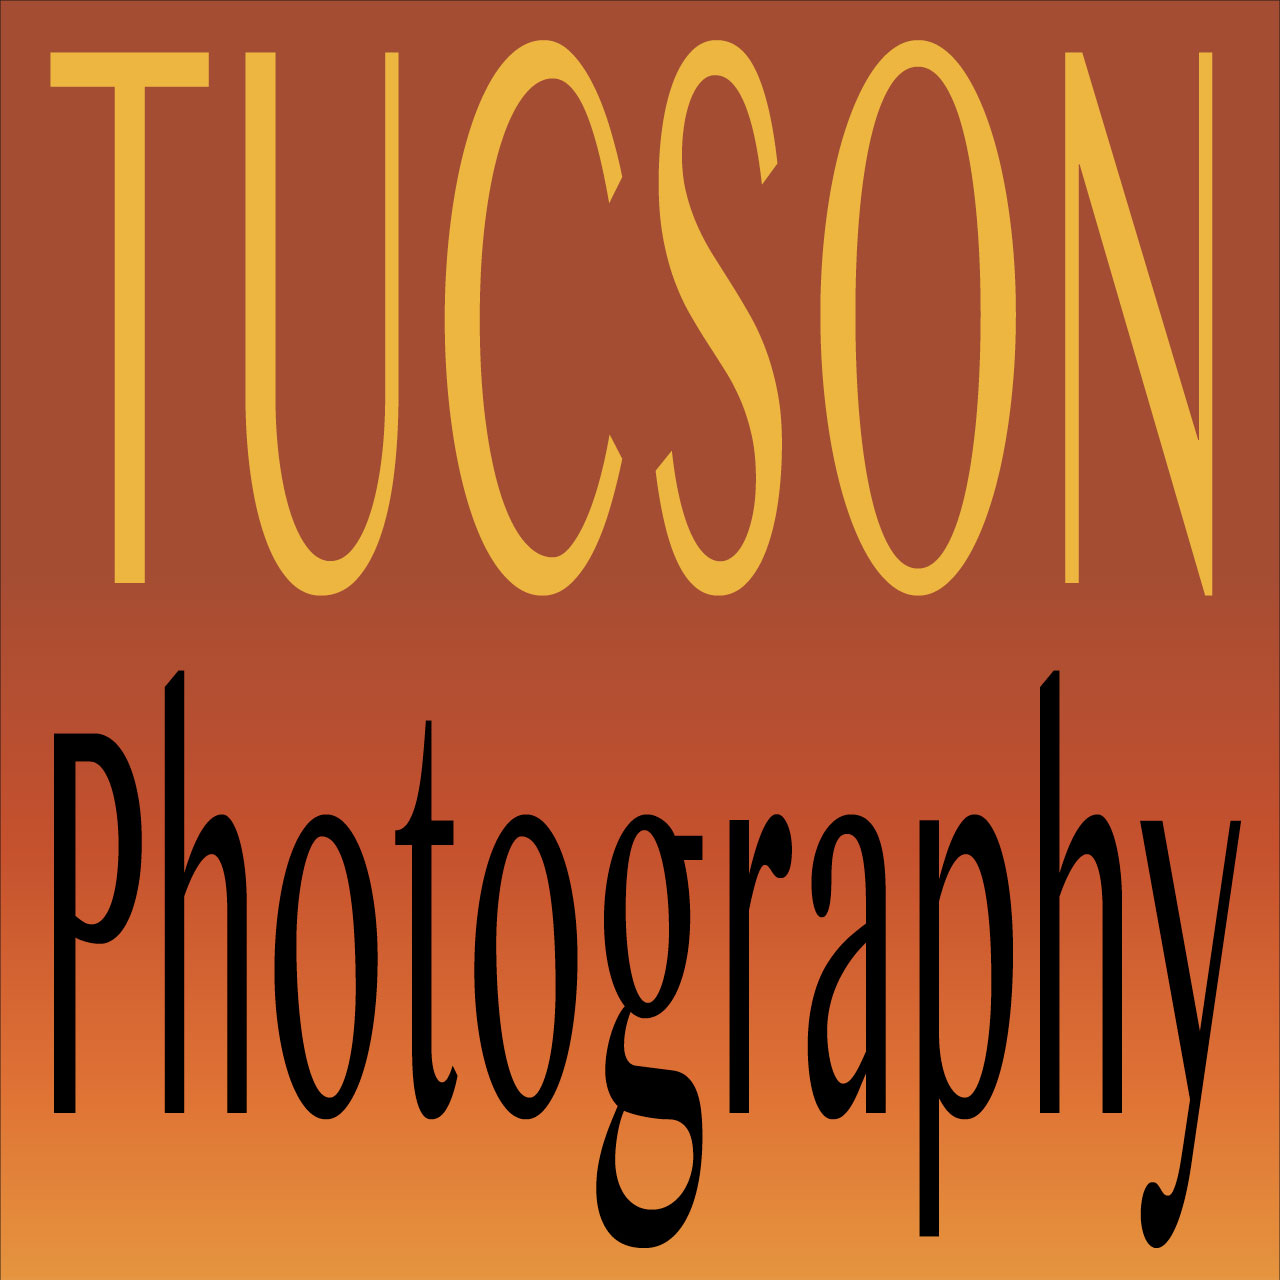 Tucson Photography